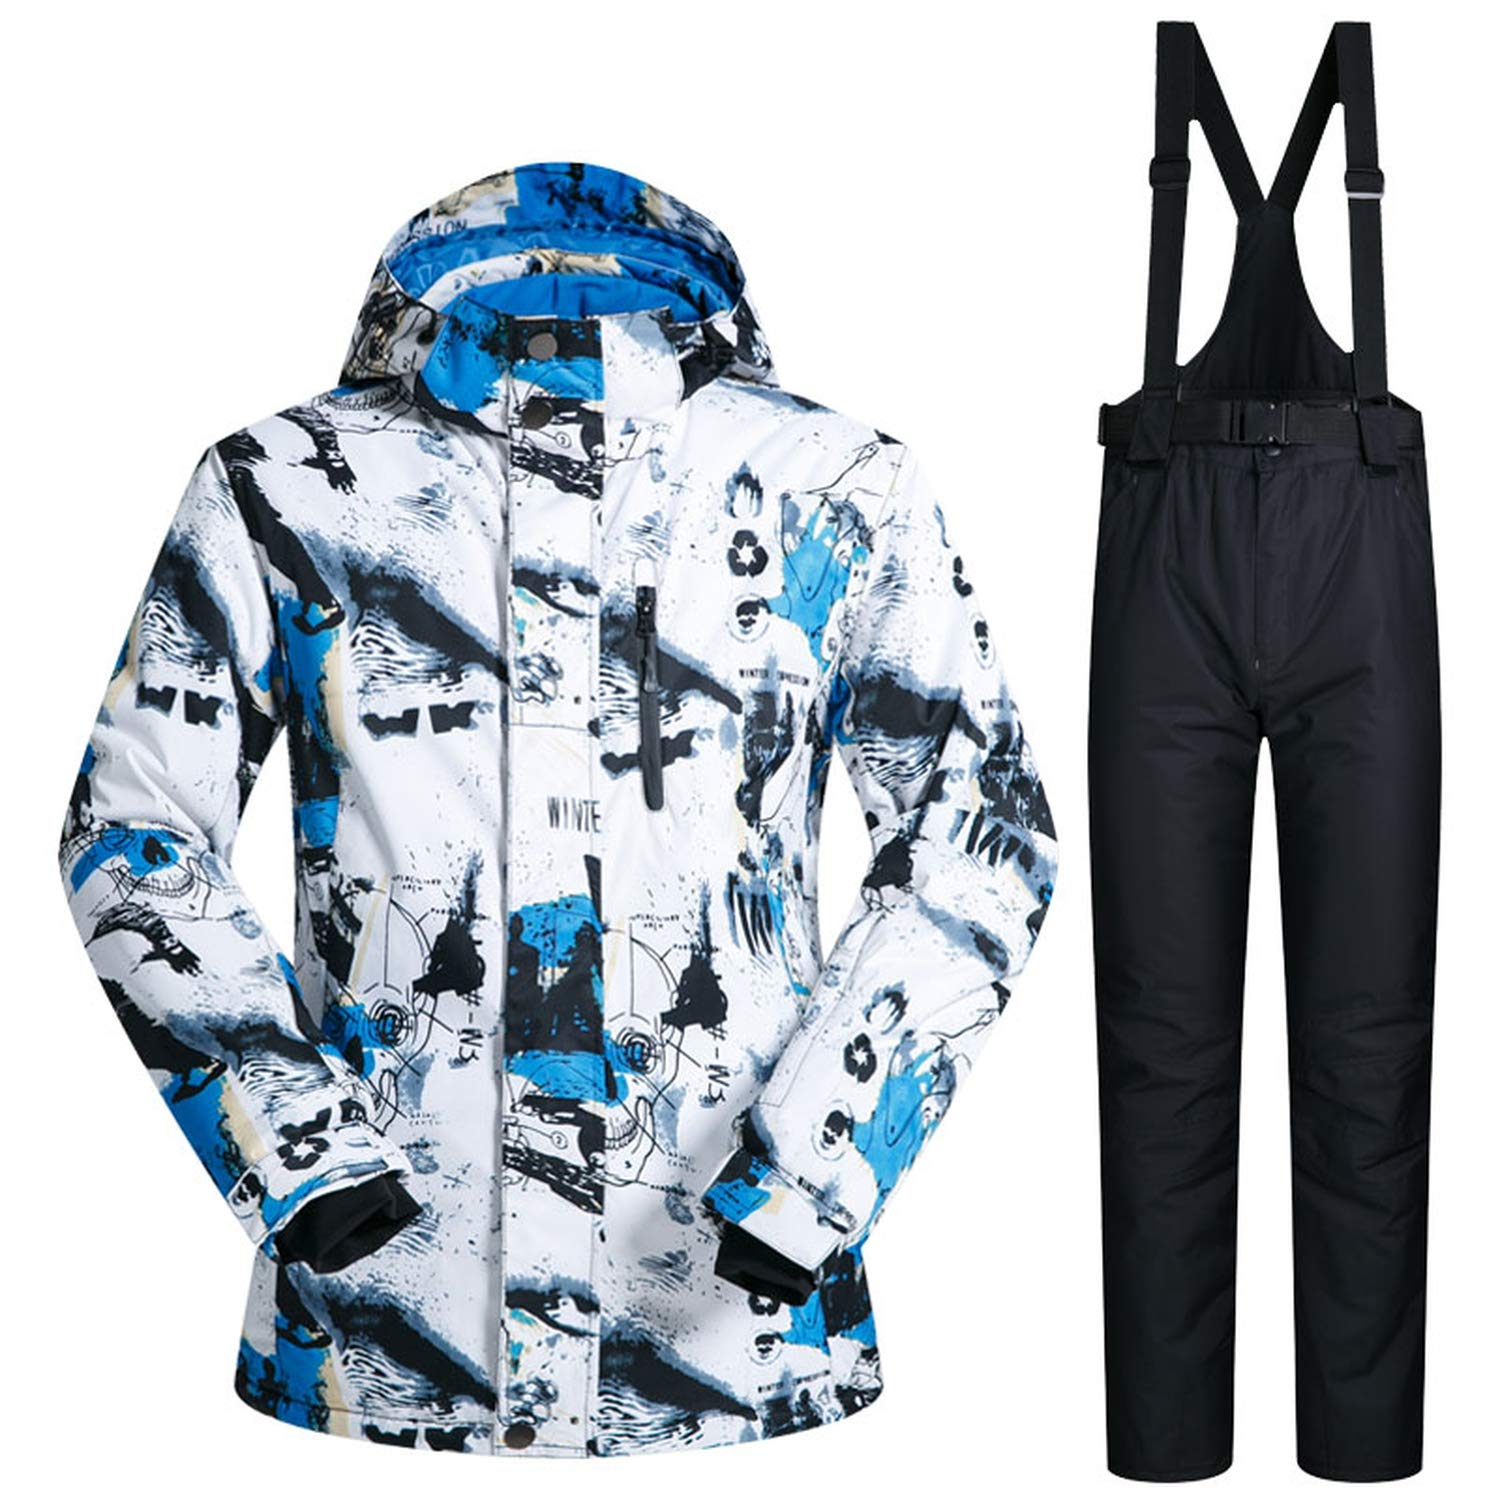 Ski Suit Mens Winter Warm and Windproof Waterproof Outdoor Sports Snow Sports hot Brand ski Equipment ski Jackets and Pants,CLMC and Blue,XXXL